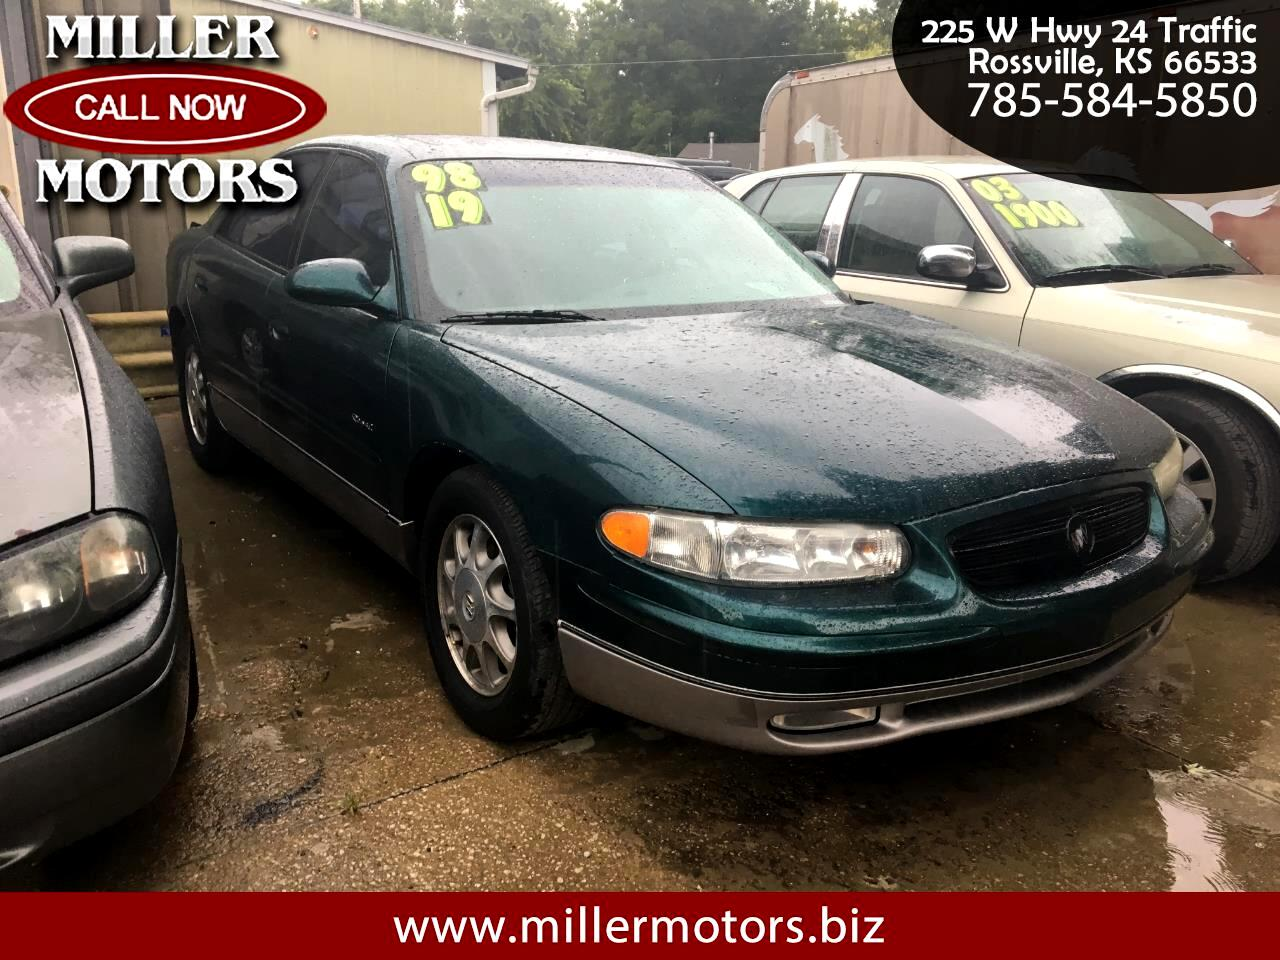 1998 Buick Regal 4dr Sdn GS